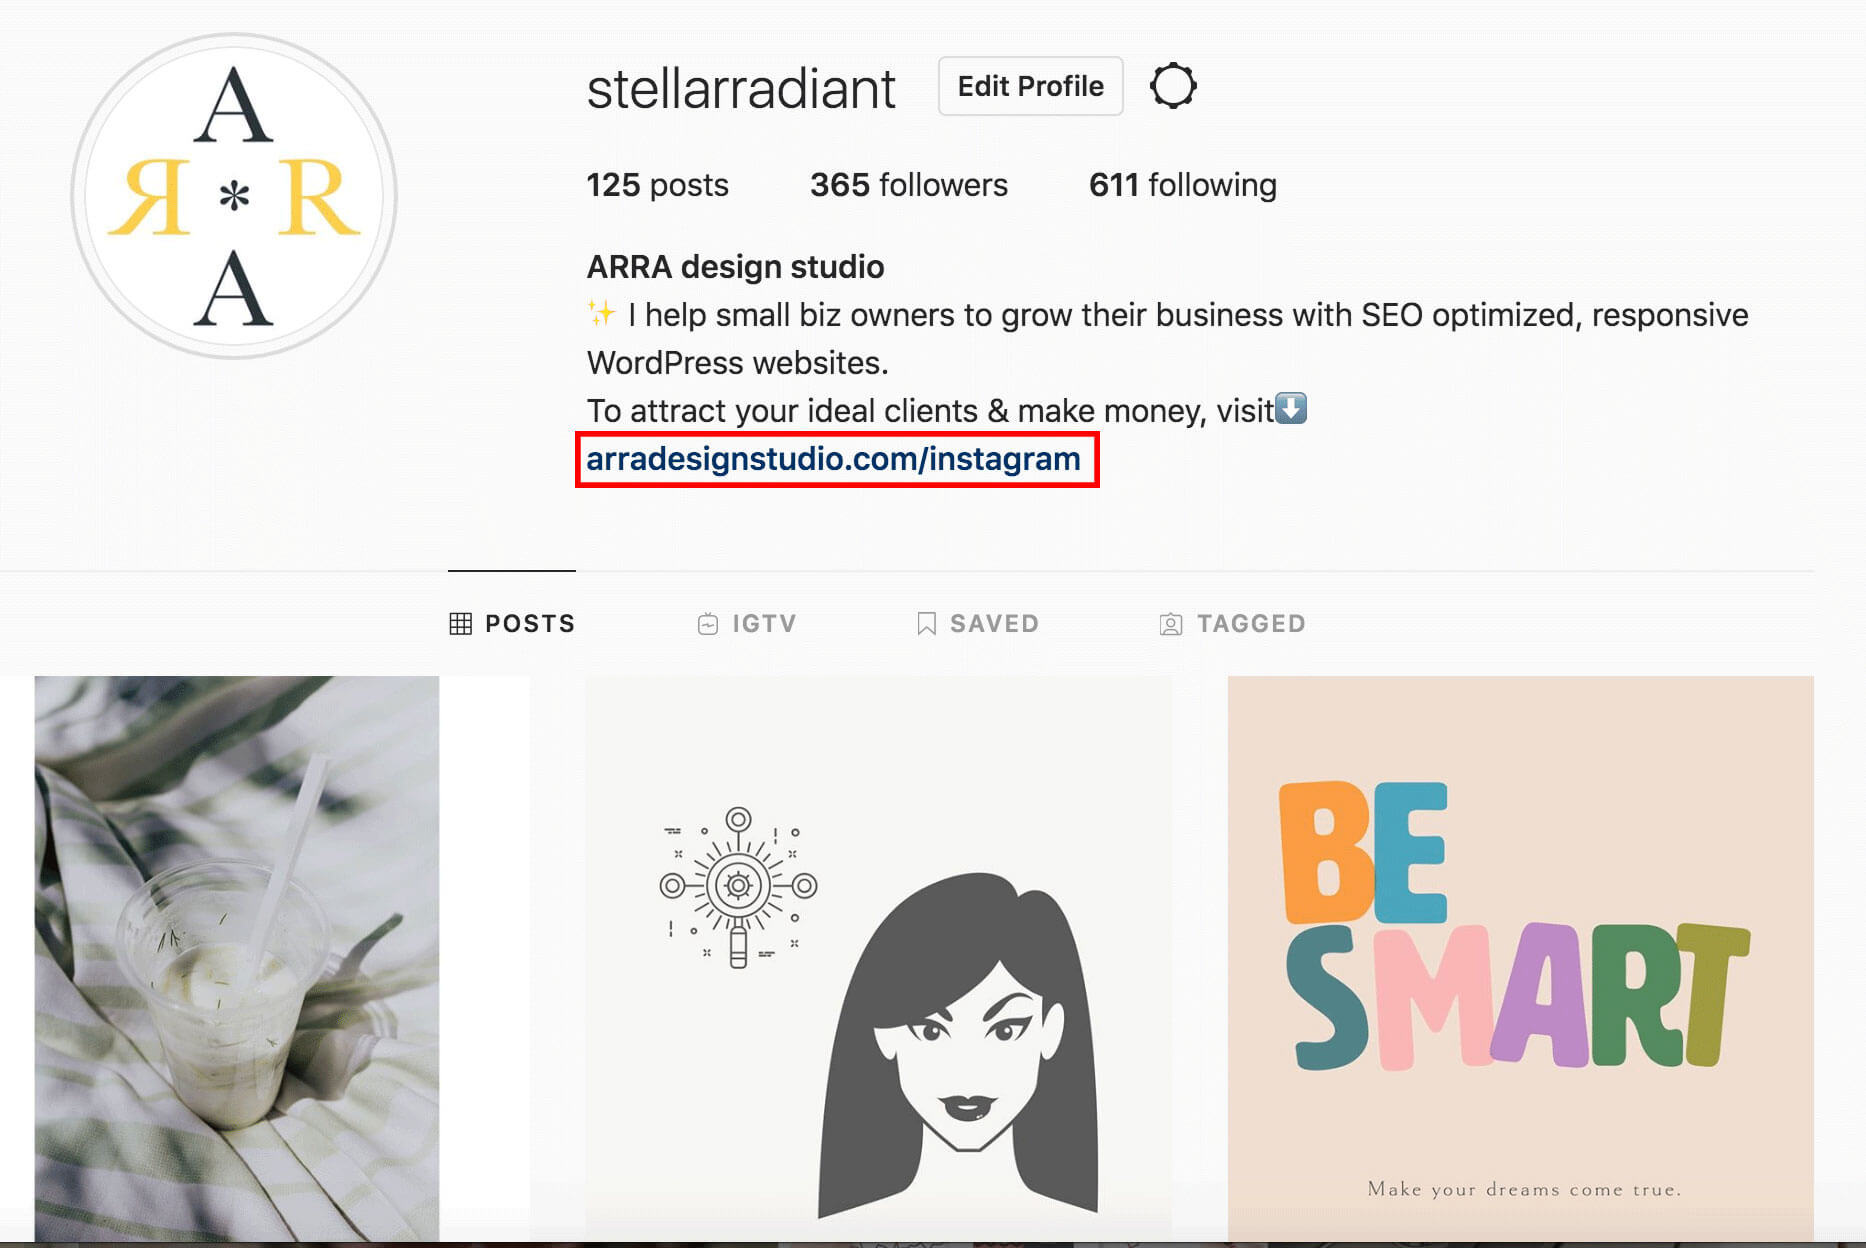 screenshot of ARRA design studio's Instagram bio and post feed